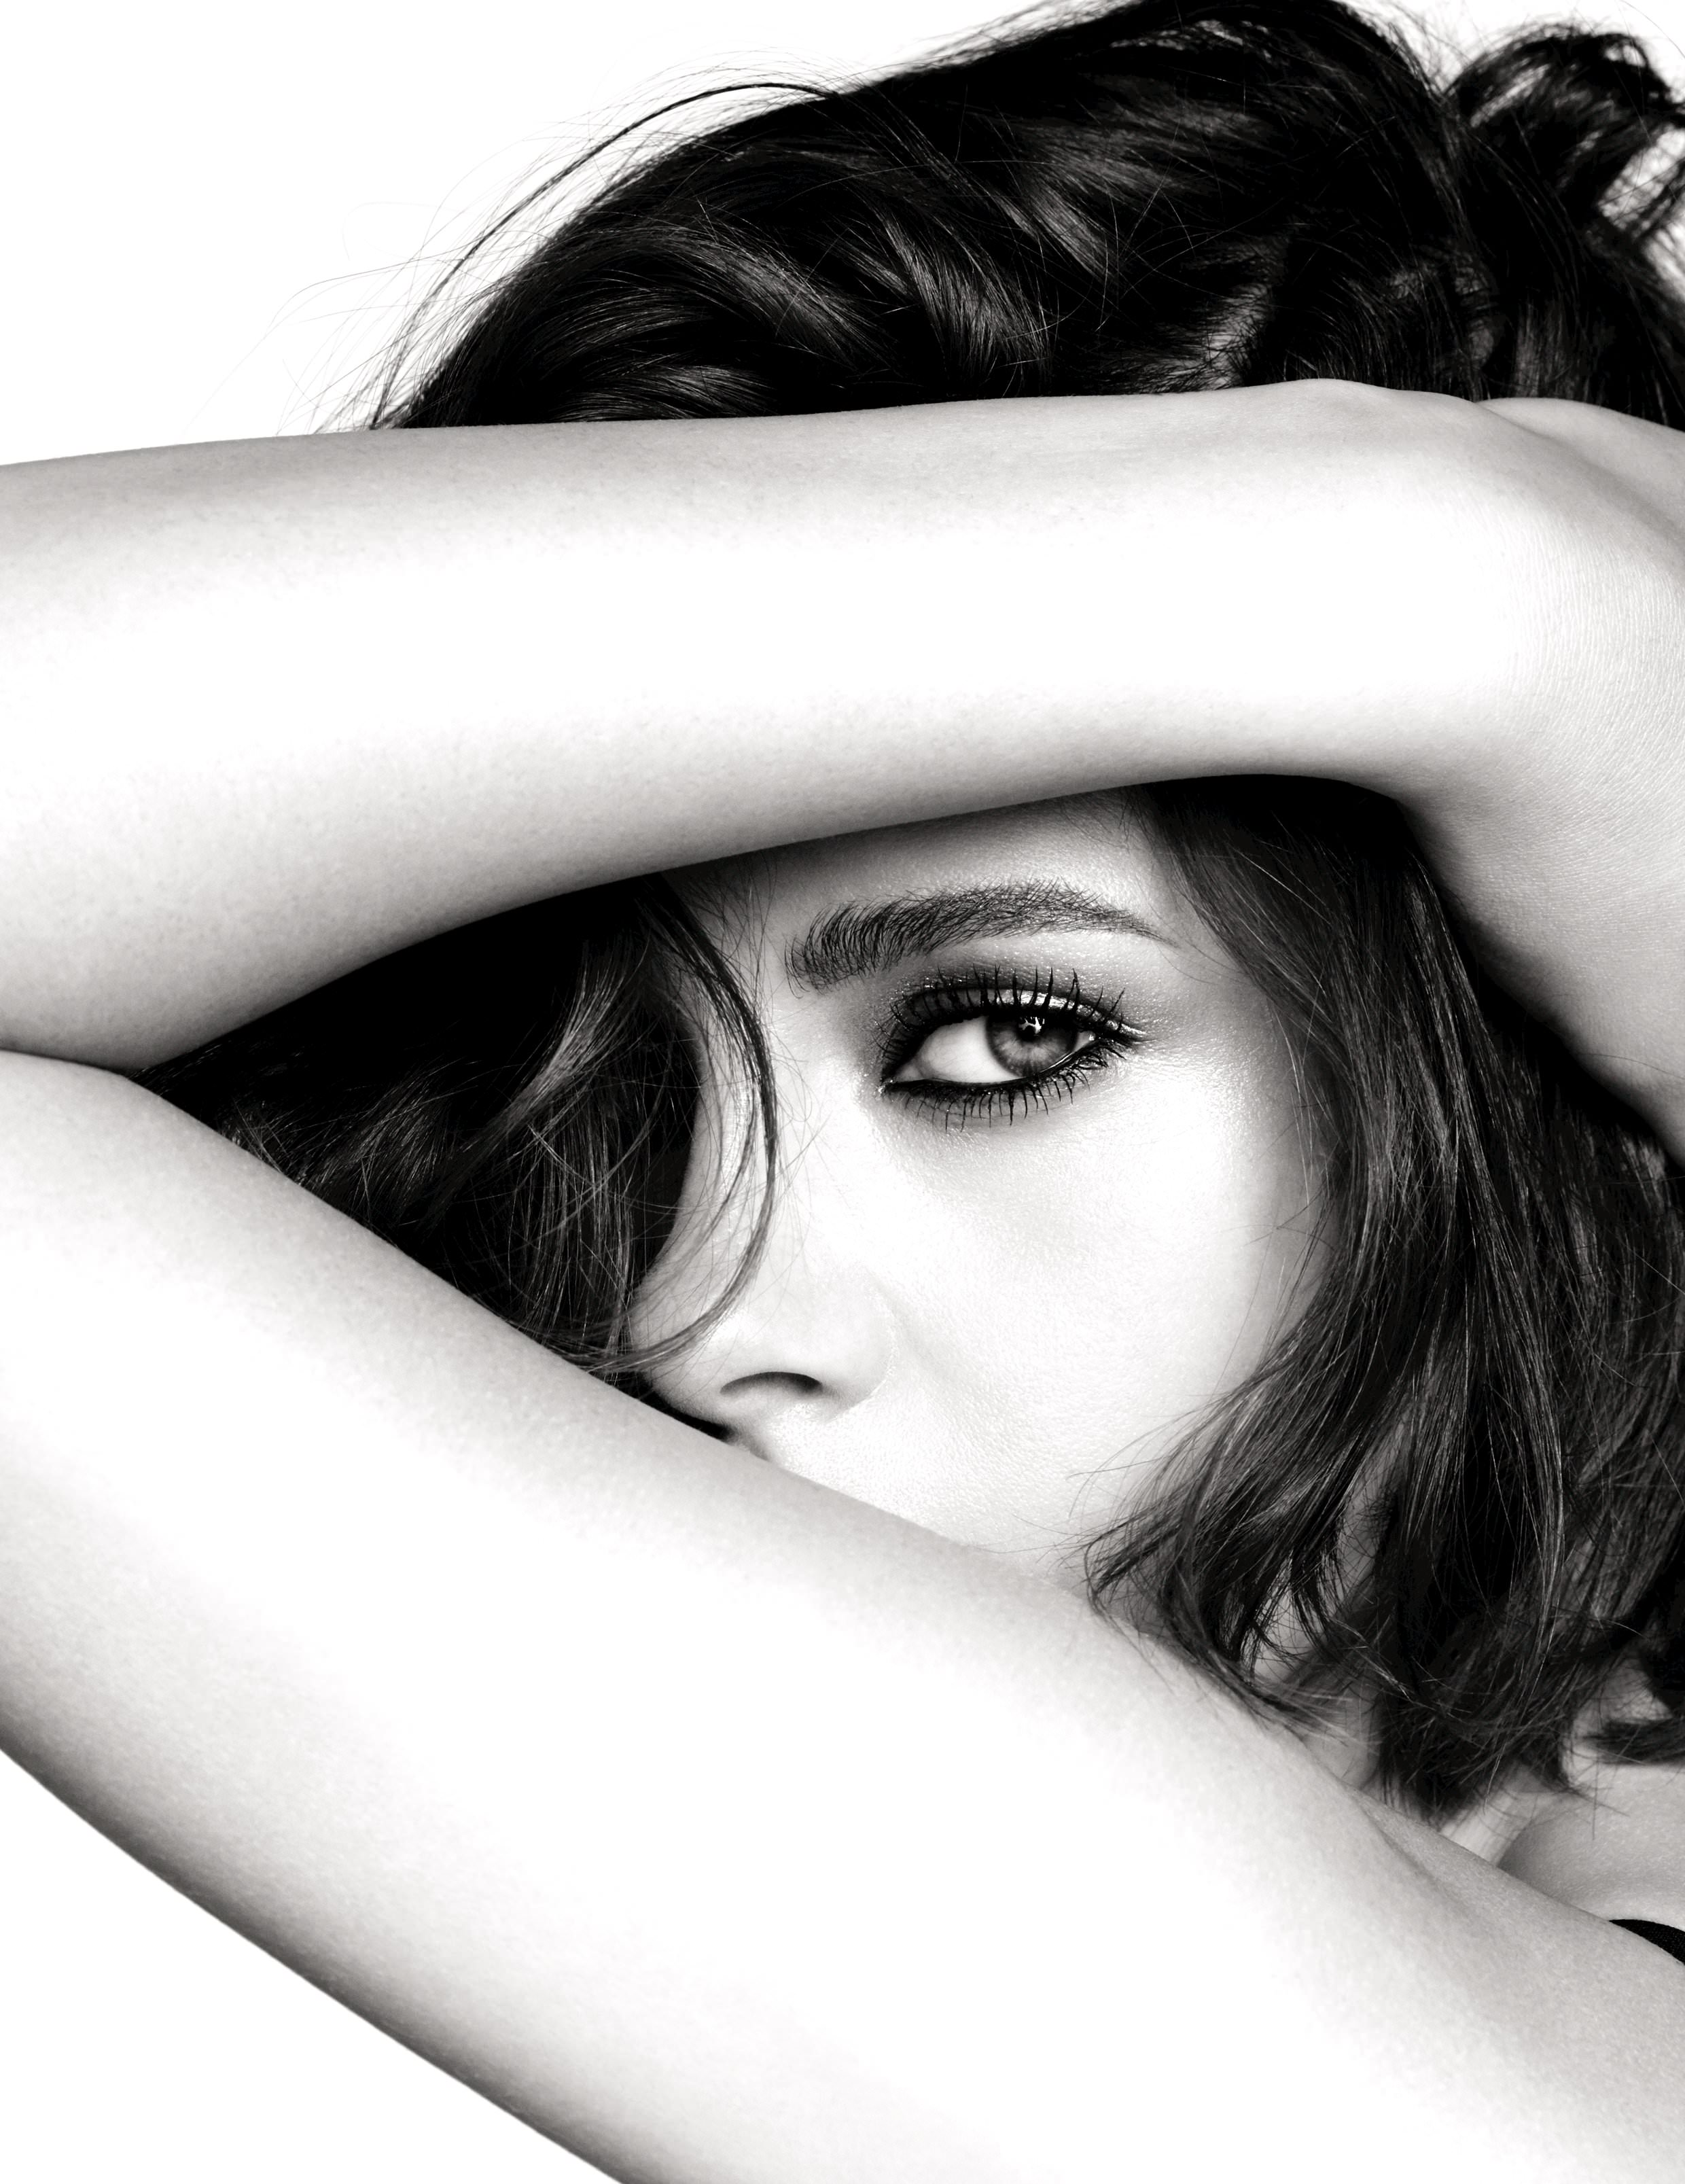 Kristen Stewart, the new face of Chanel's cosmetics